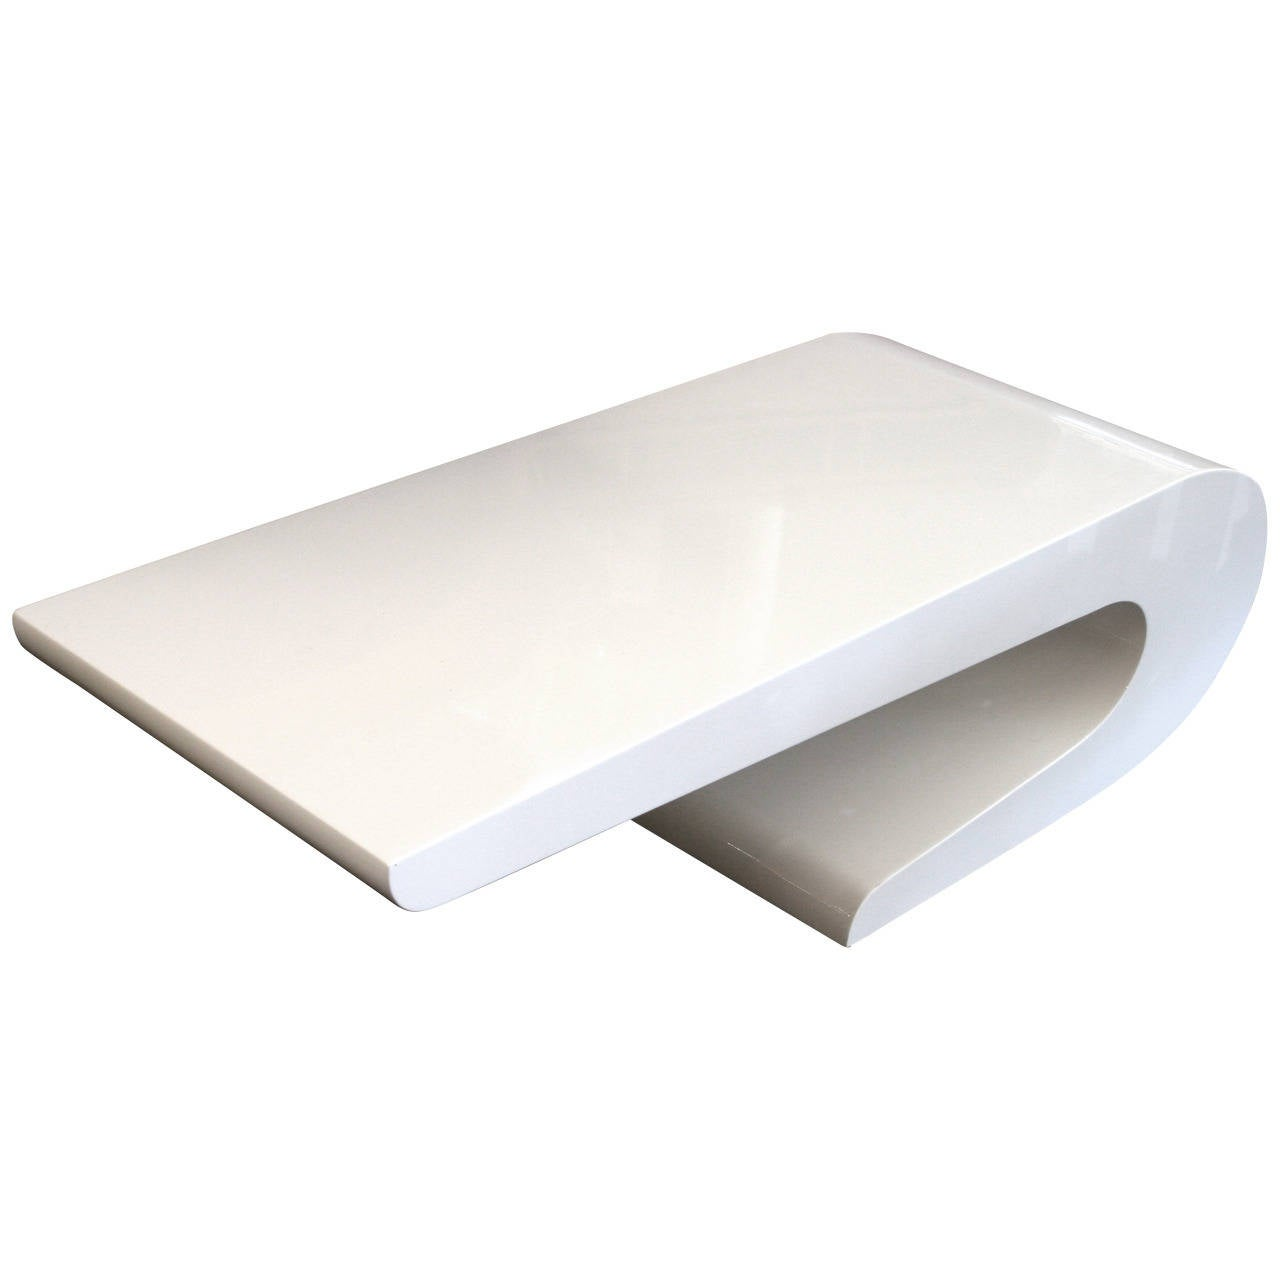 Pierre cardin style coffee table in white lacquer circa for Lacquer coffee table